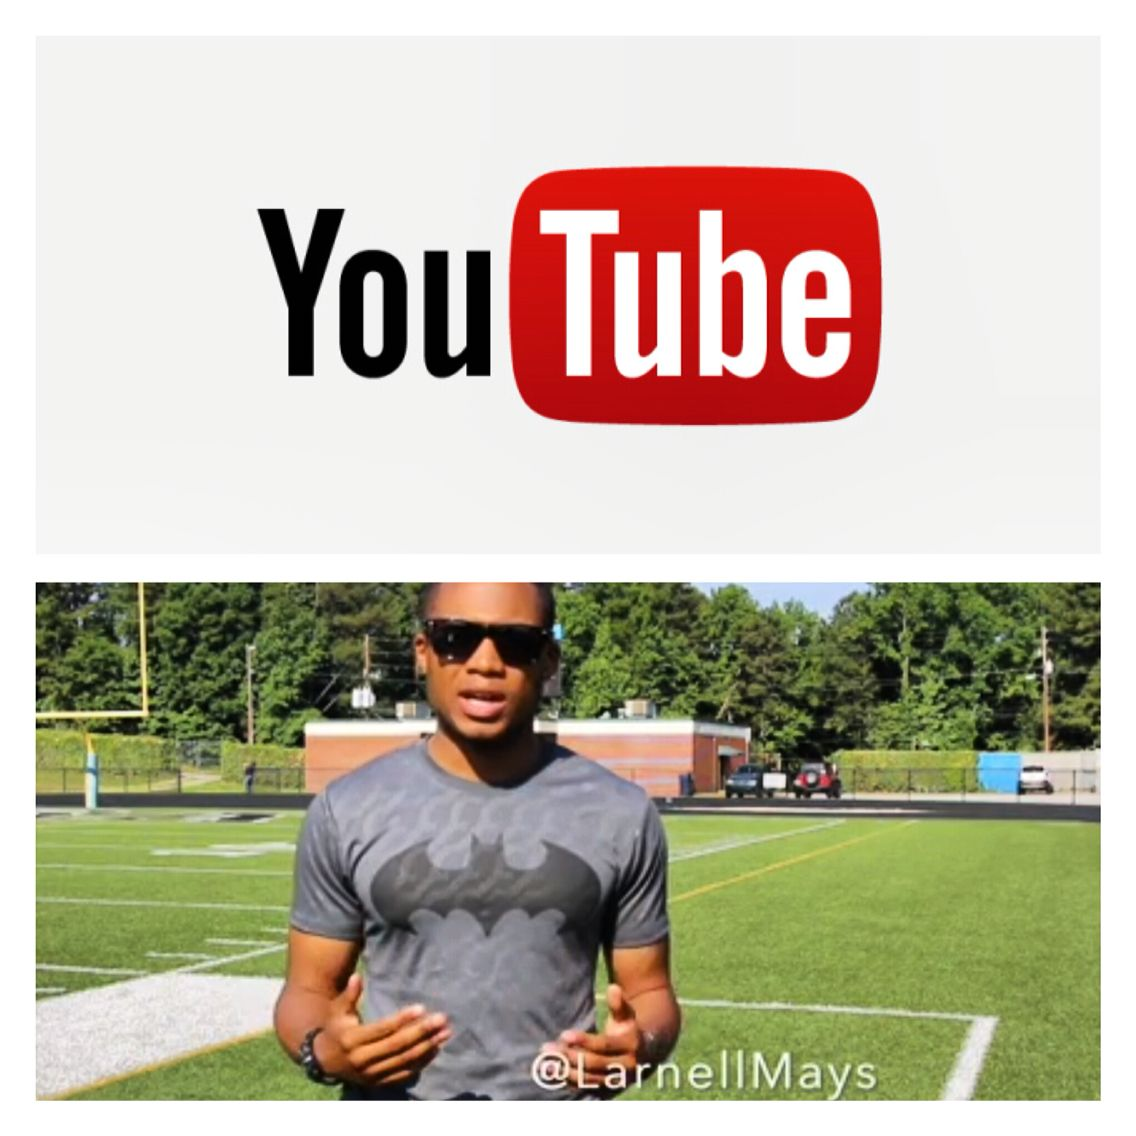 💥New #athletictraining Video up now via @youtube #Youtube #checkitout #linkinbio👉💻 #like #share #tagsomeone 😎💪🏾 Lets be great together and stay living a #healthylifestyle More videos coming soon https://youtu.be/T2GofcX_4F4 #linkinbio #Subscribe  #athletes  #collegefootball  #collegebasketball  #Lacrosse #tennis  #Gsu #Cau #Spelman #kennesawstate  #georgiastate